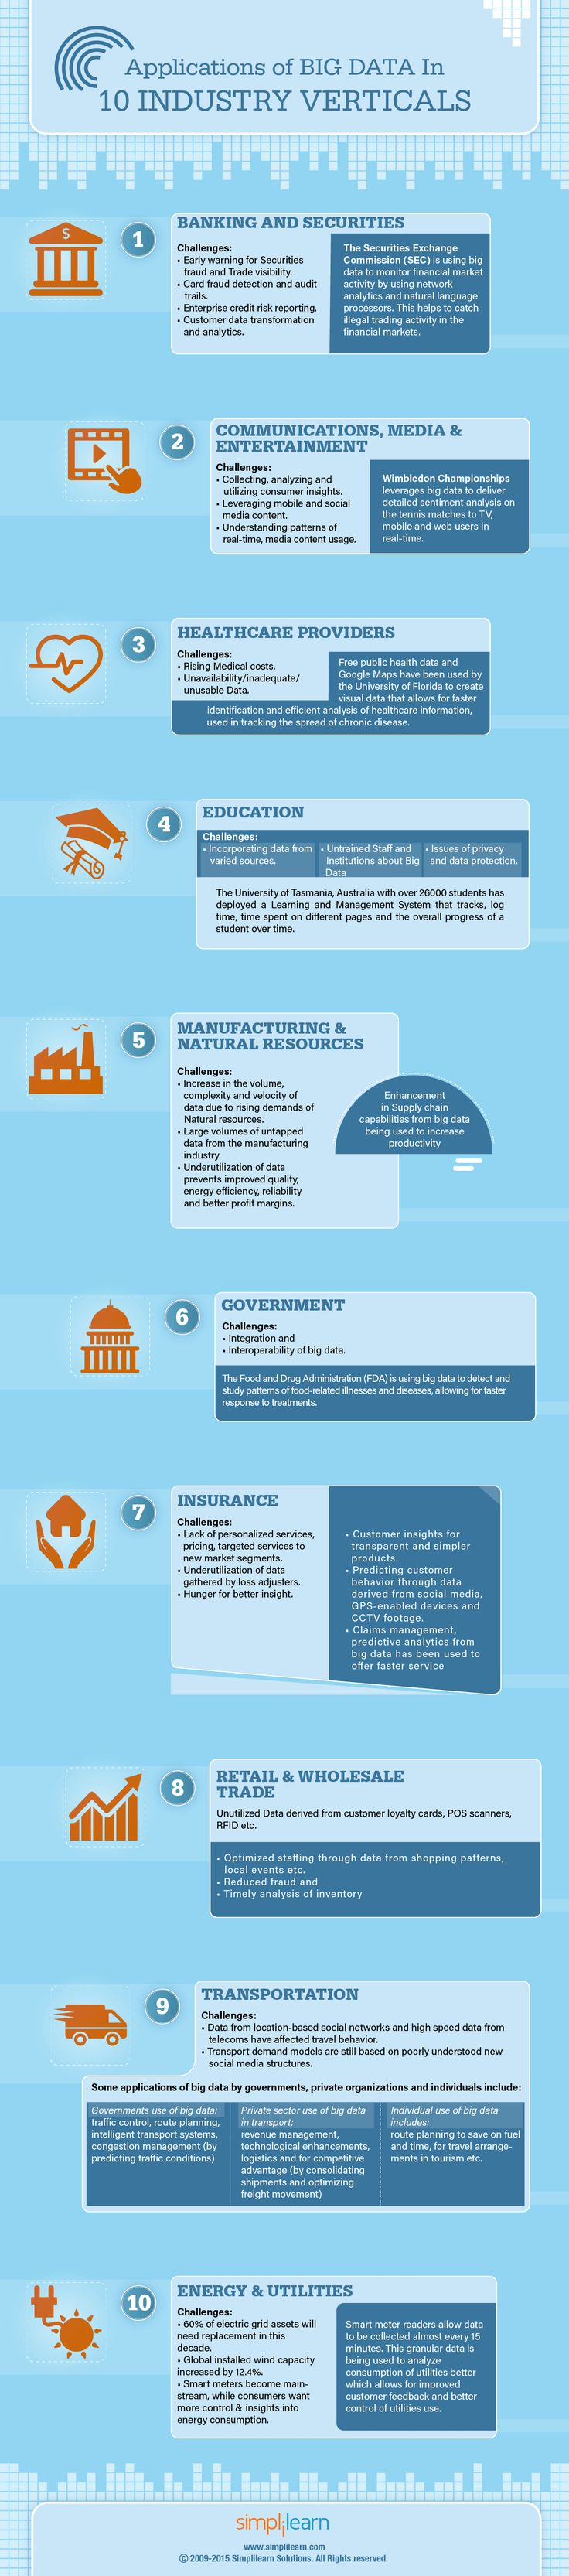 How Top 10 Industries Use Big Data Applications | Data Science Association